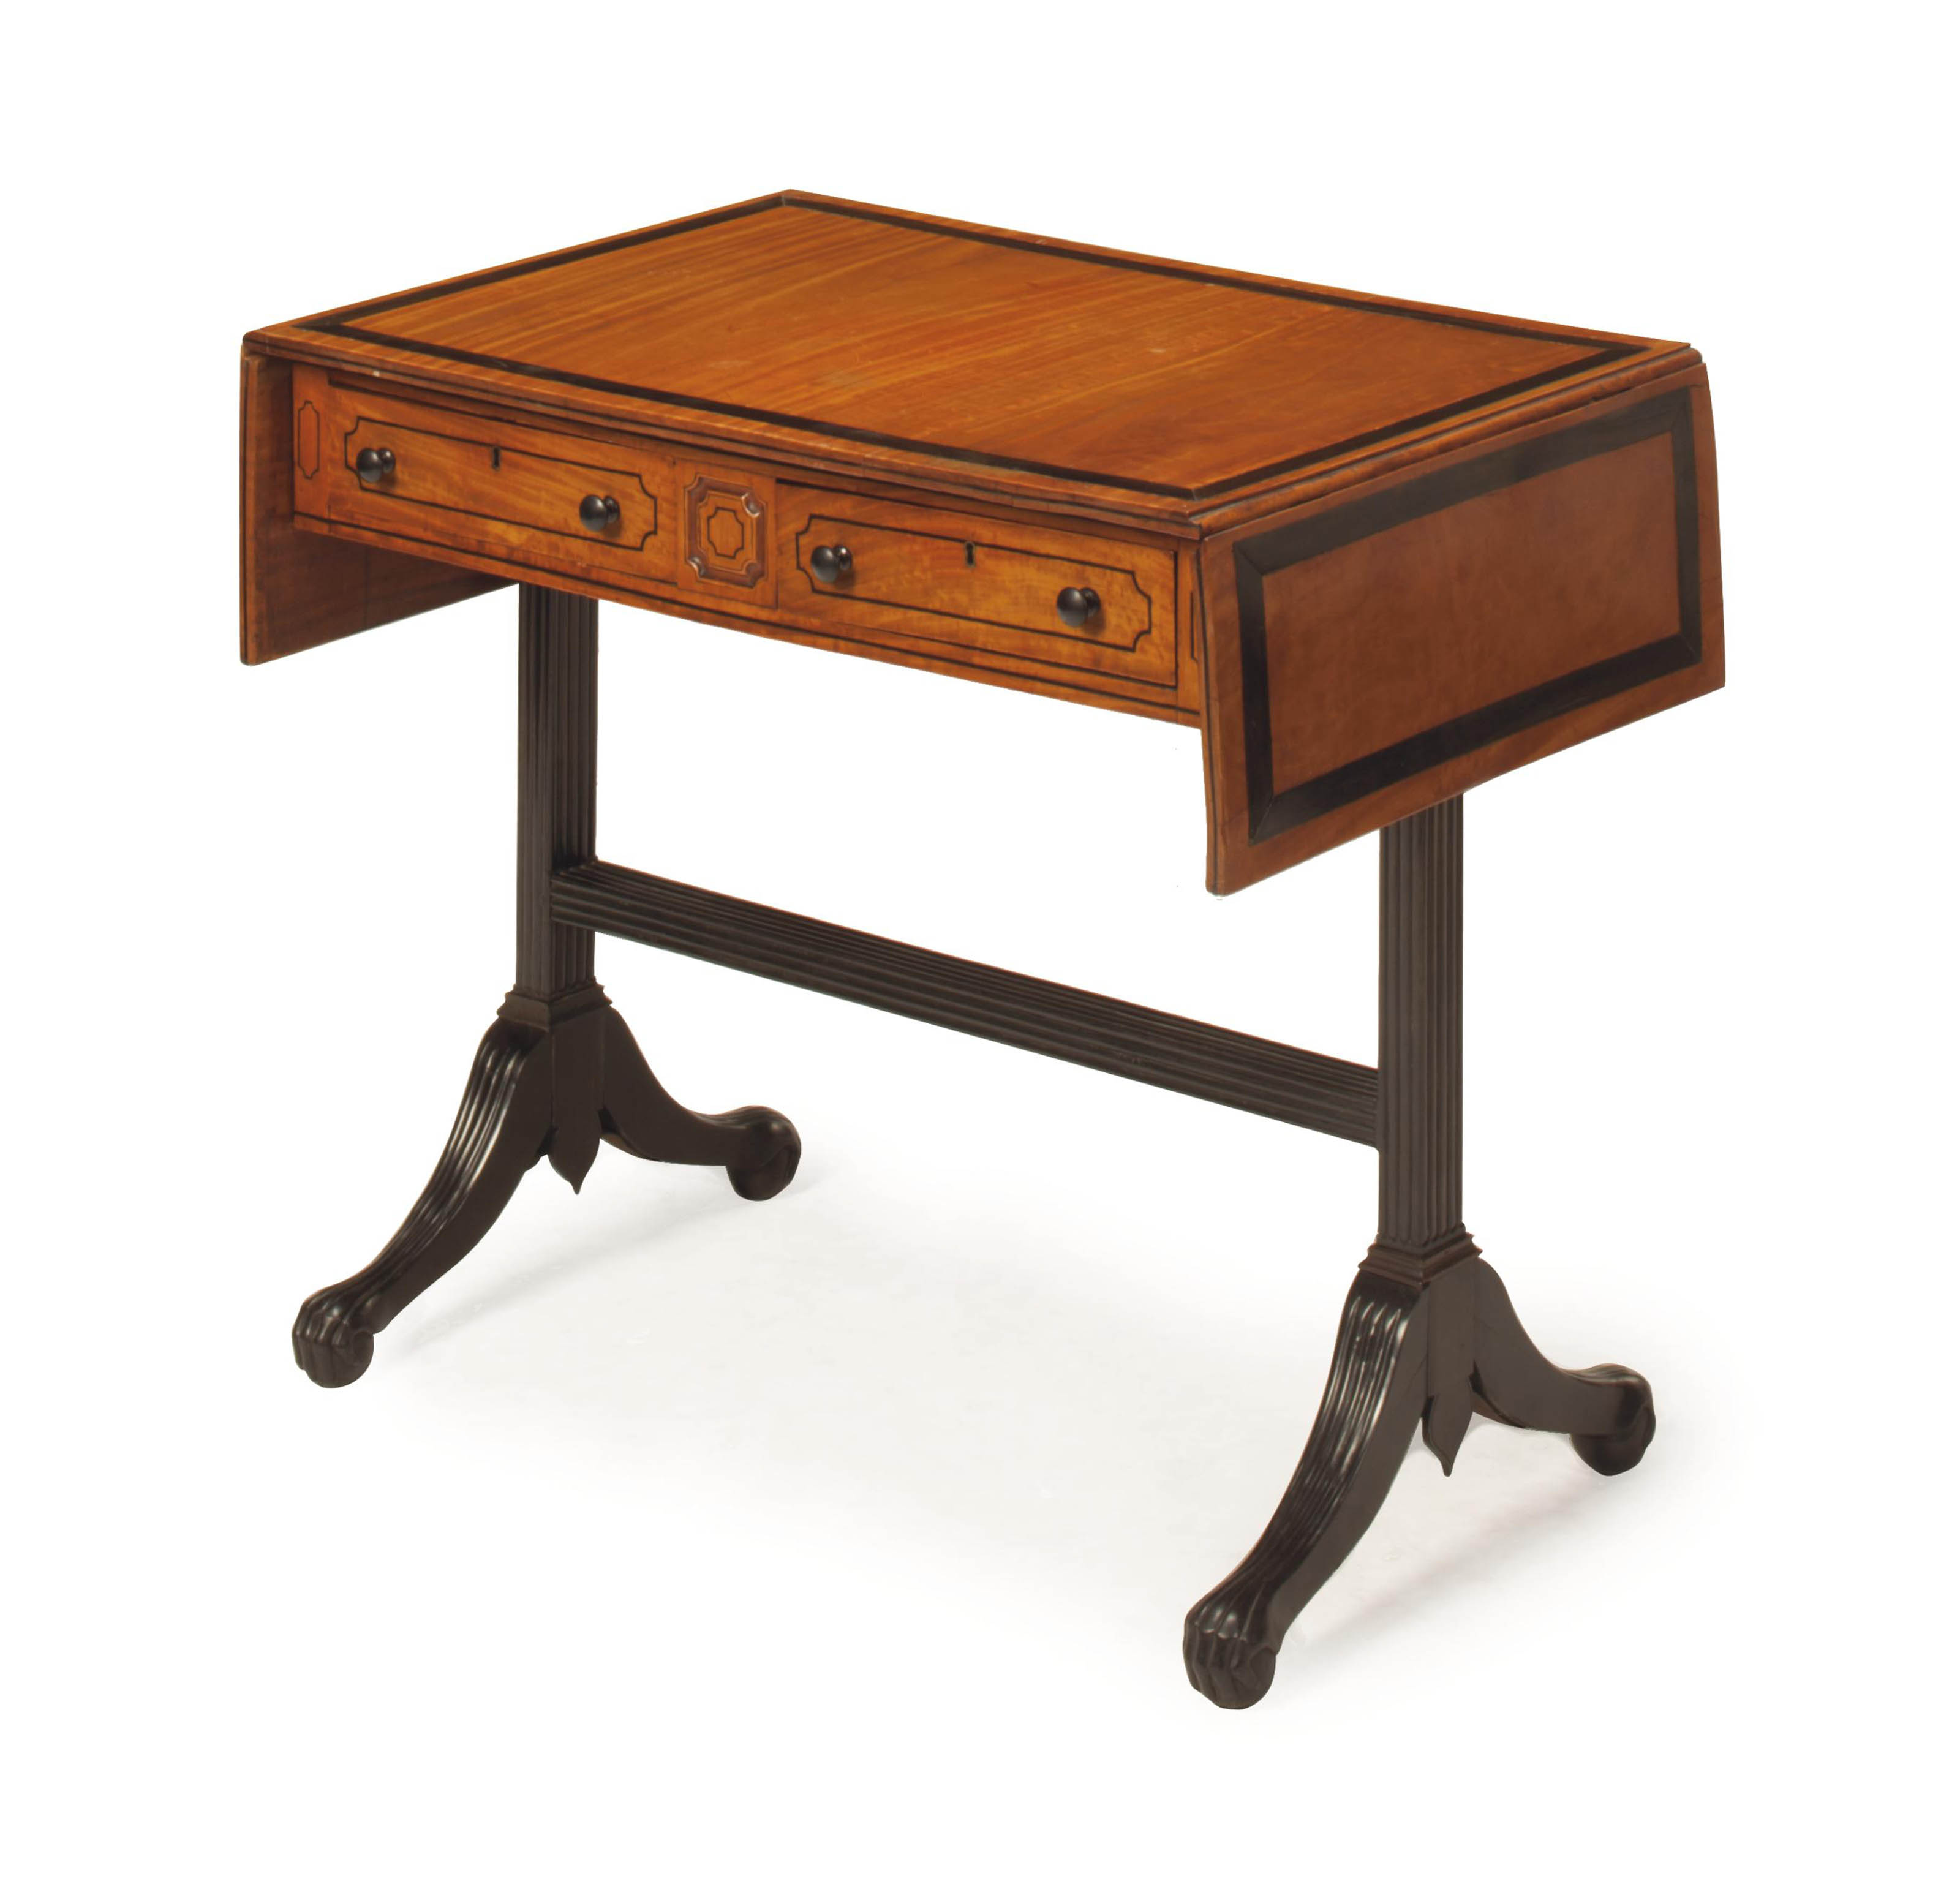 AN ANGLO-INDIAN SATINWOOD AND